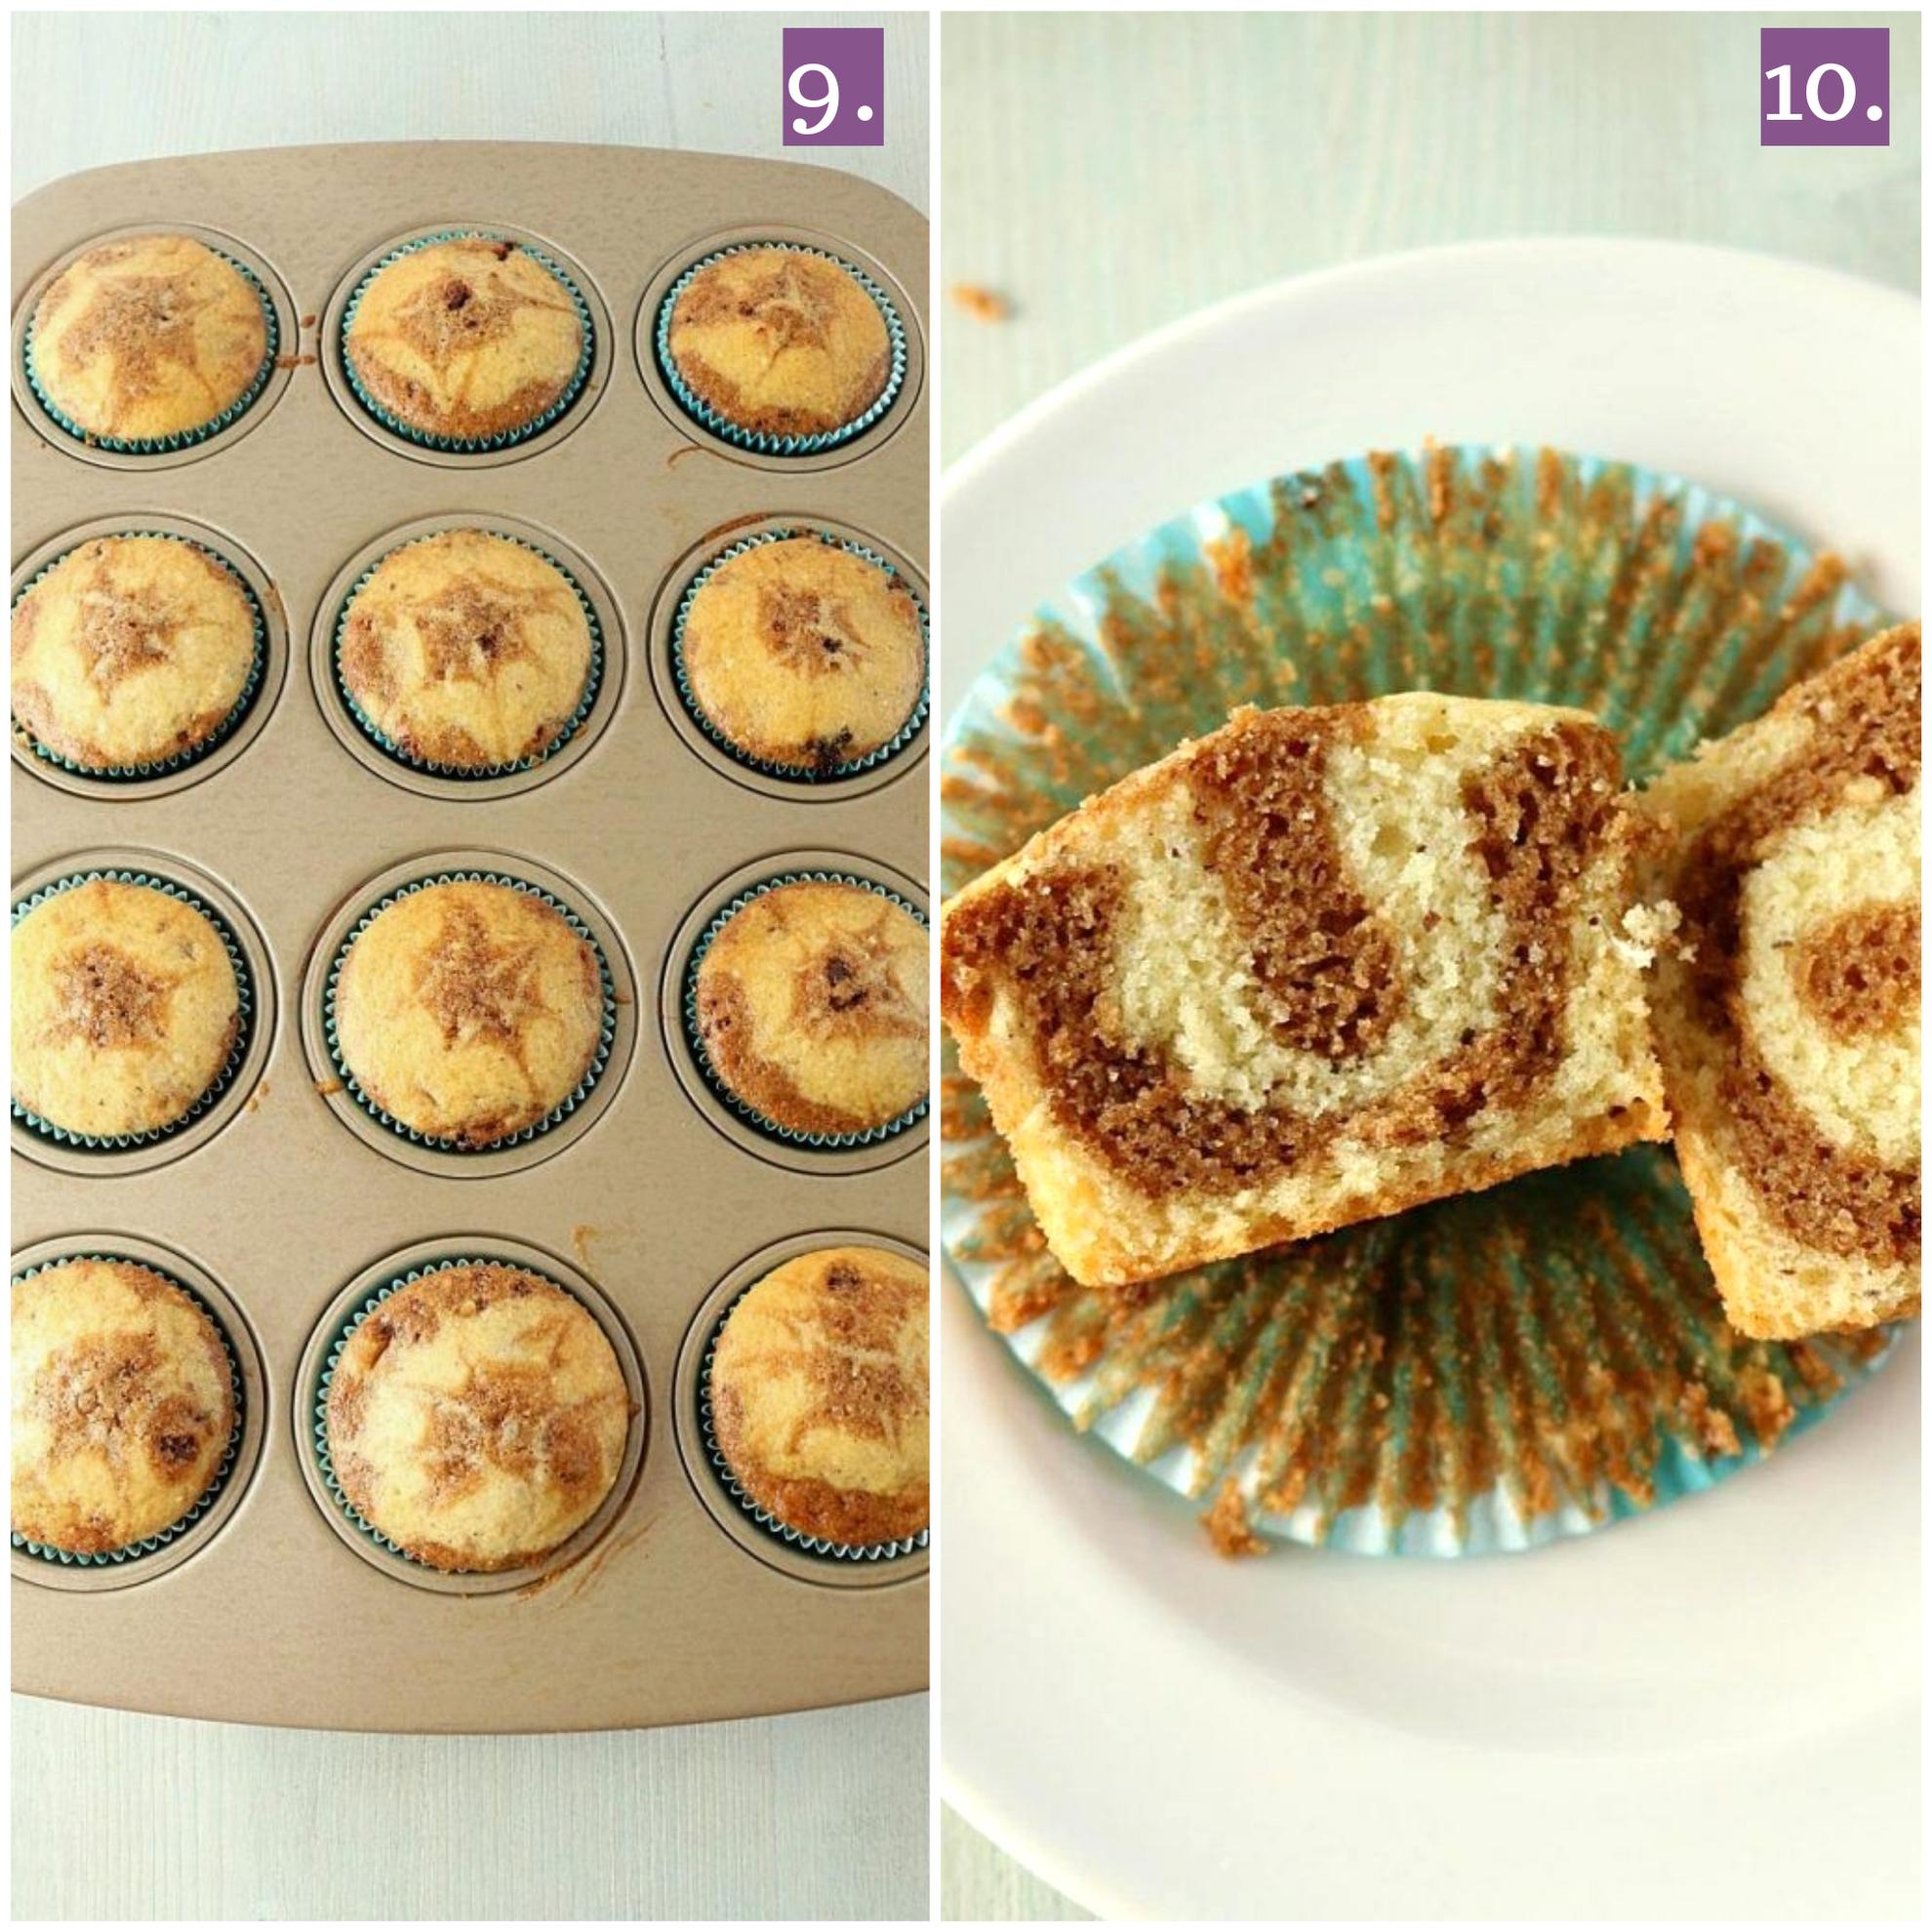 Baked cupcakes